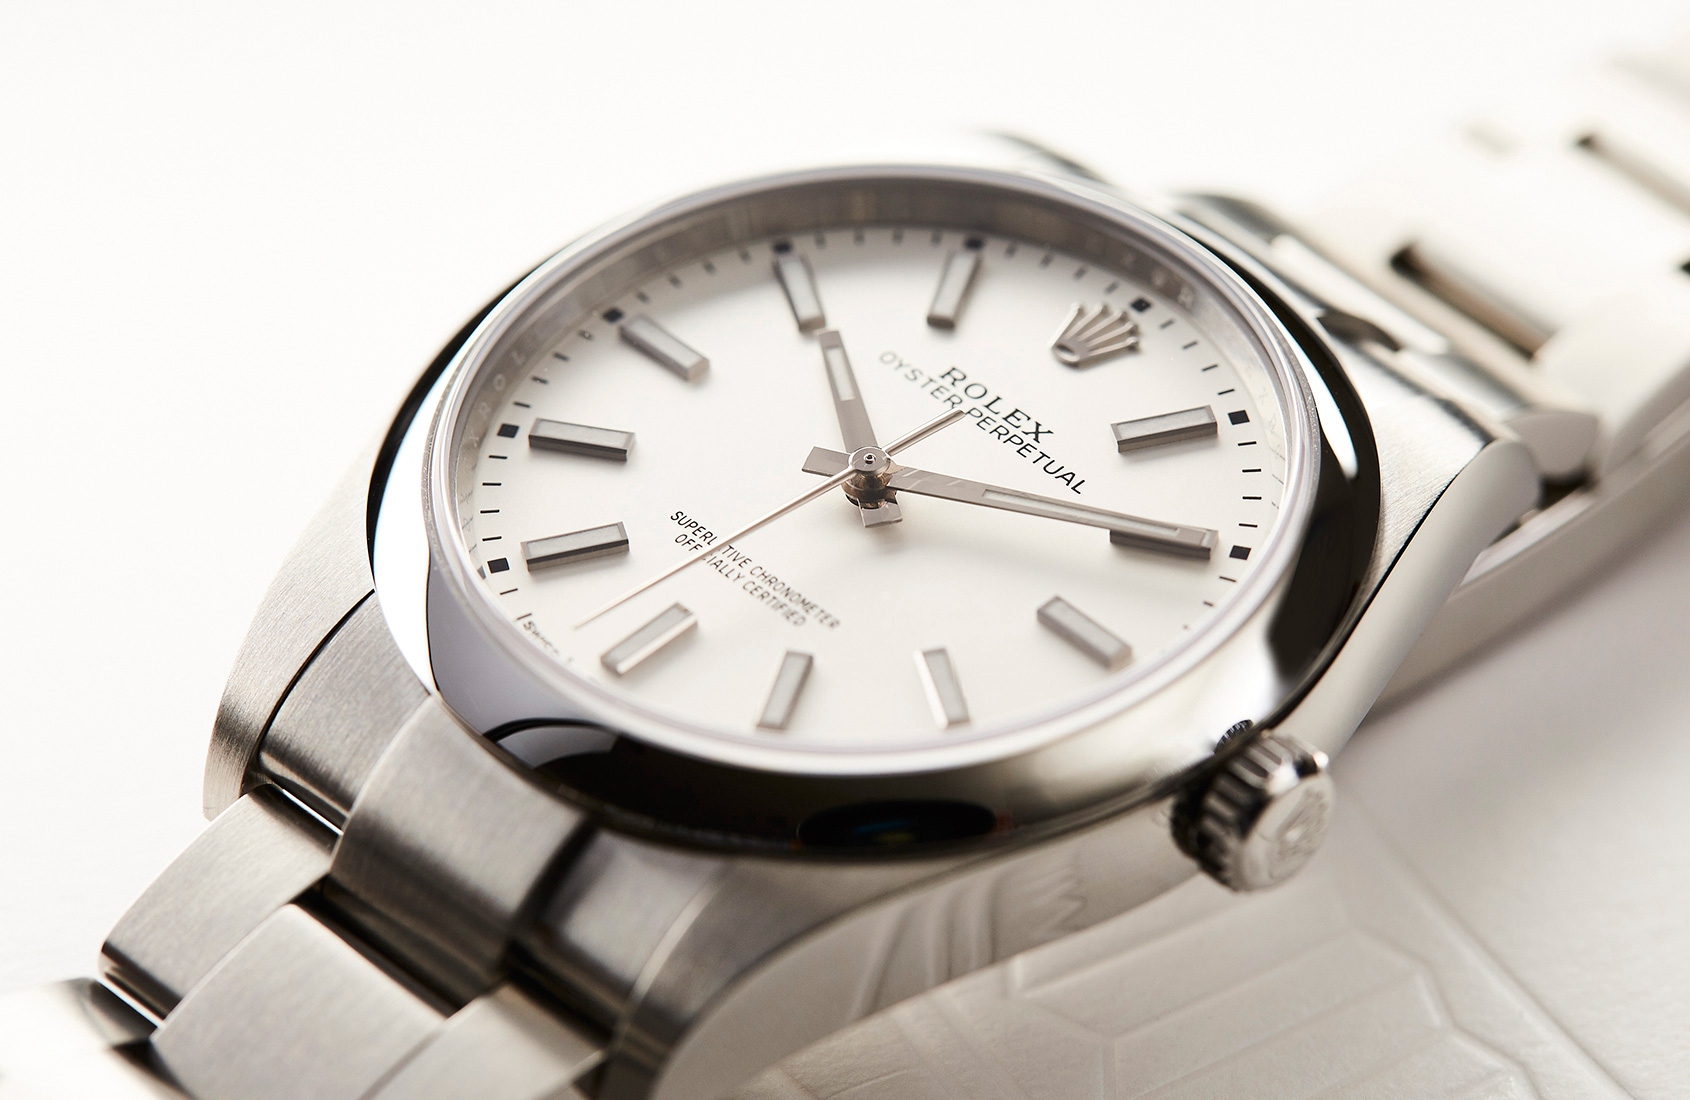 This is the Rolex you can't believe has just been discontinued (and these comments reveal how upset you are)